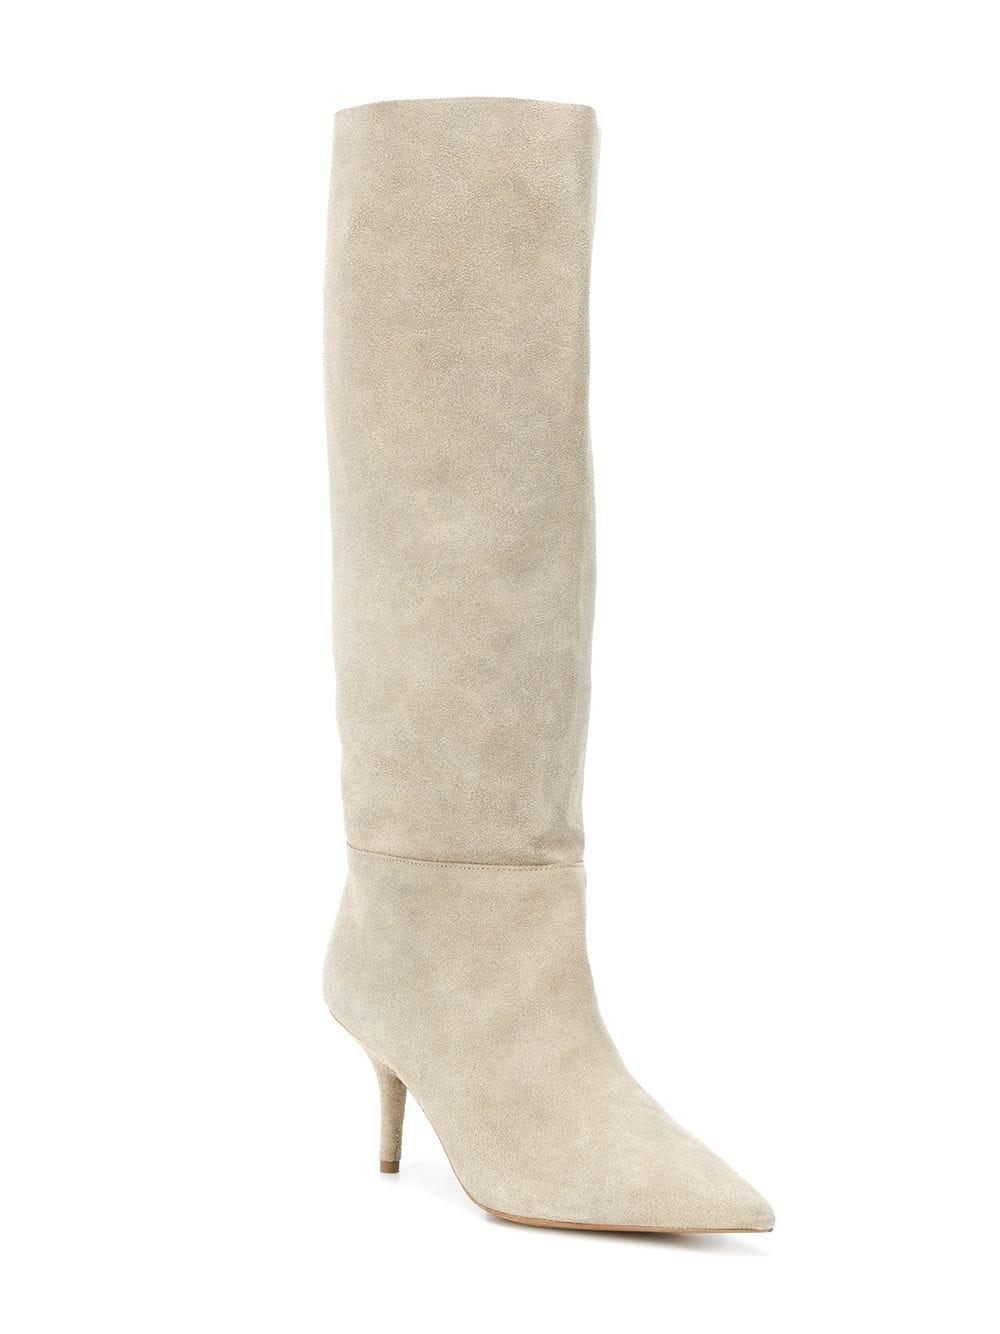 0de08a328fc Yeezy Knee-high Boots in Natural - Save 8.867924528301884% - Lyst